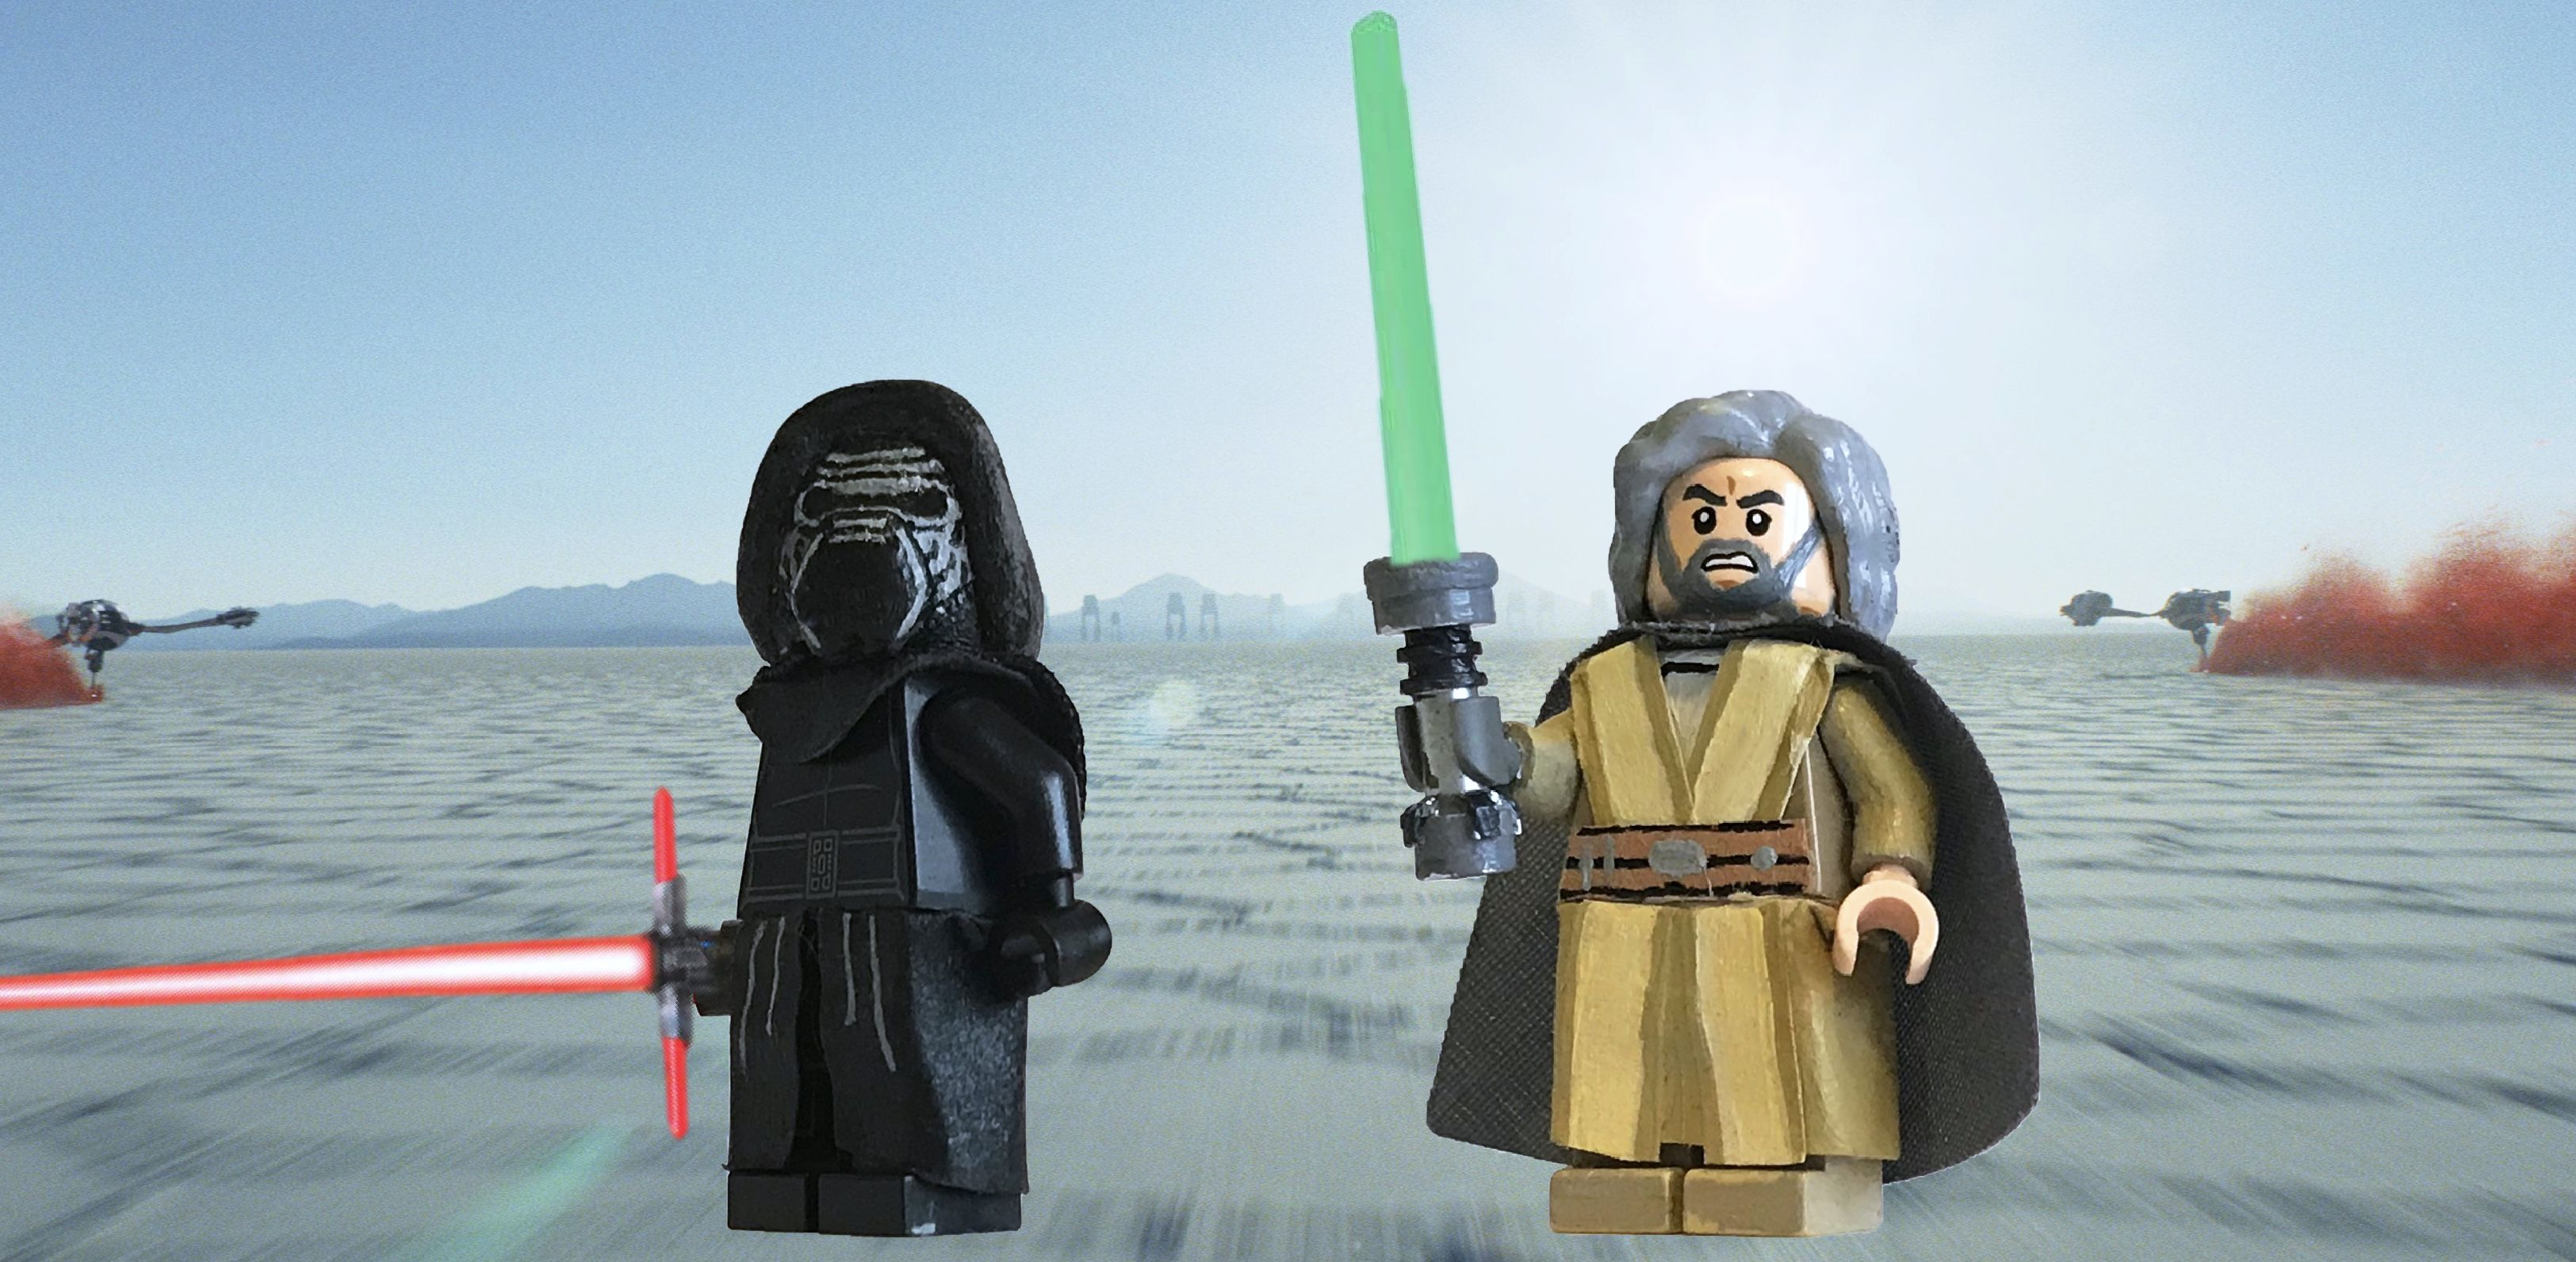 Pin By Blixus Vixus On Lego Star Wars Mostly Lego Star Wars